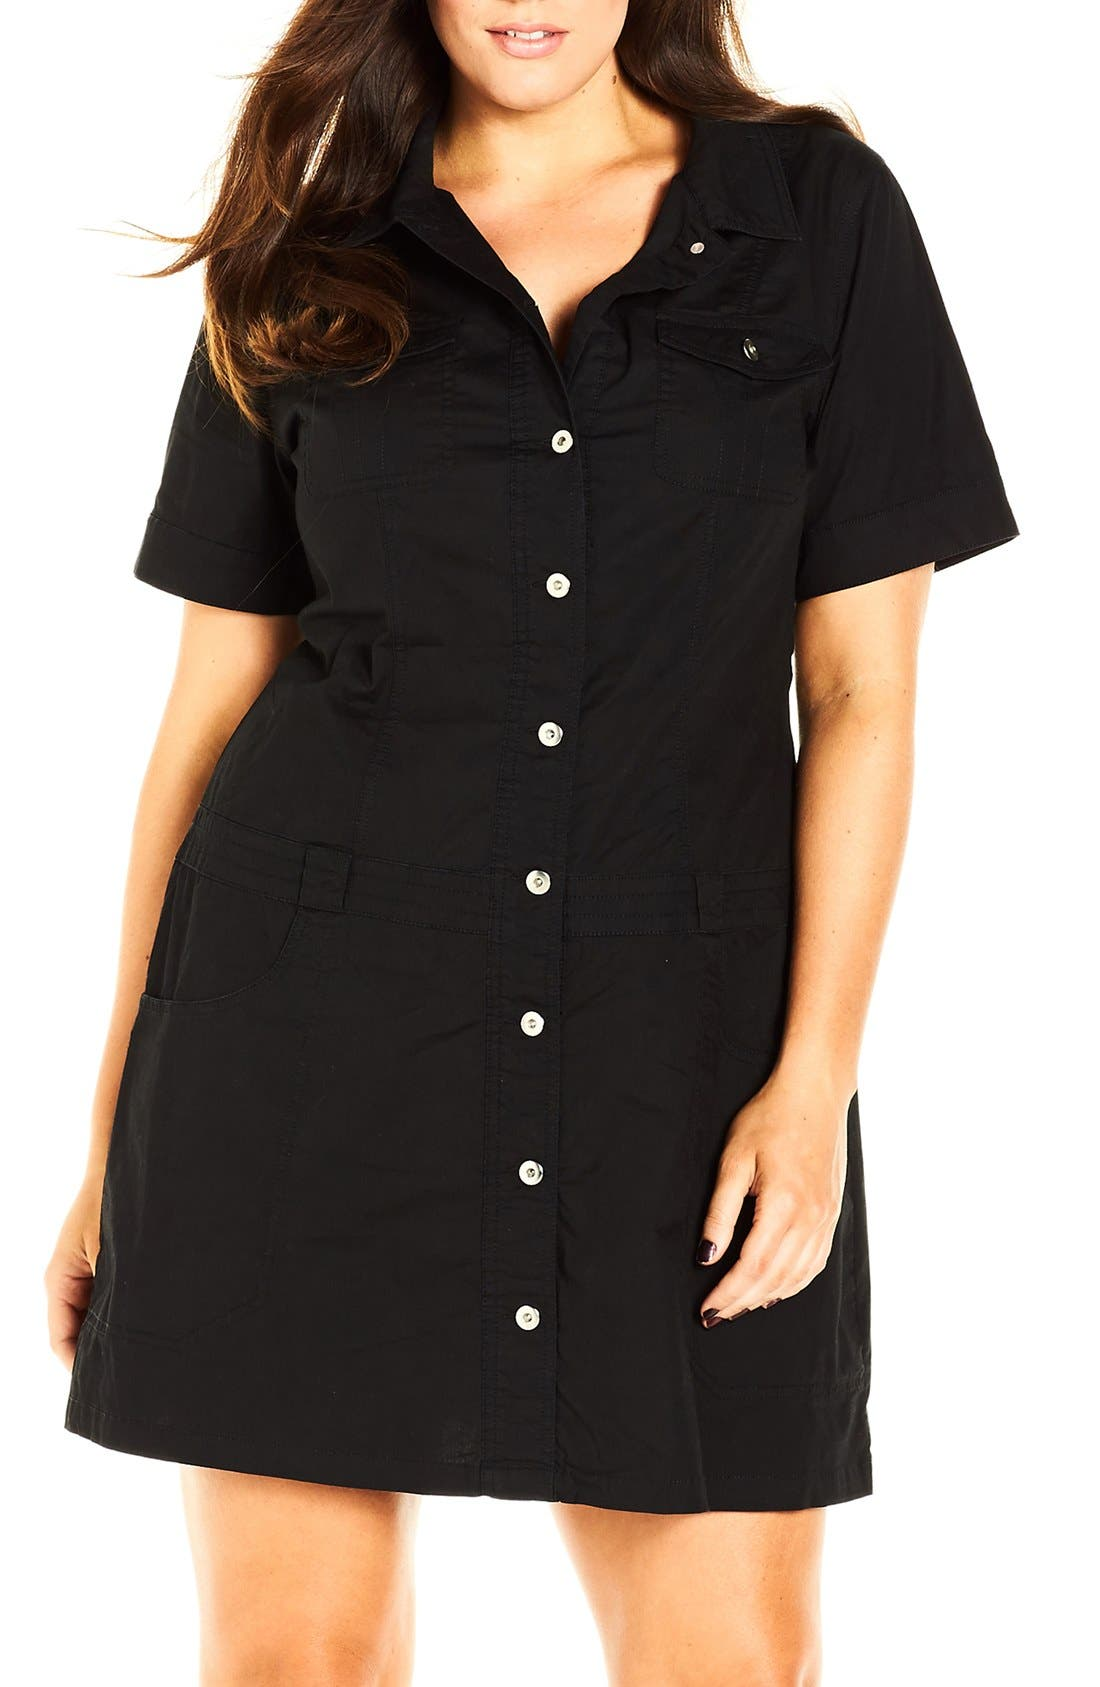 CITY CHIC 'Adventure' Short Sleeve Stretch Cotton Shirtdress